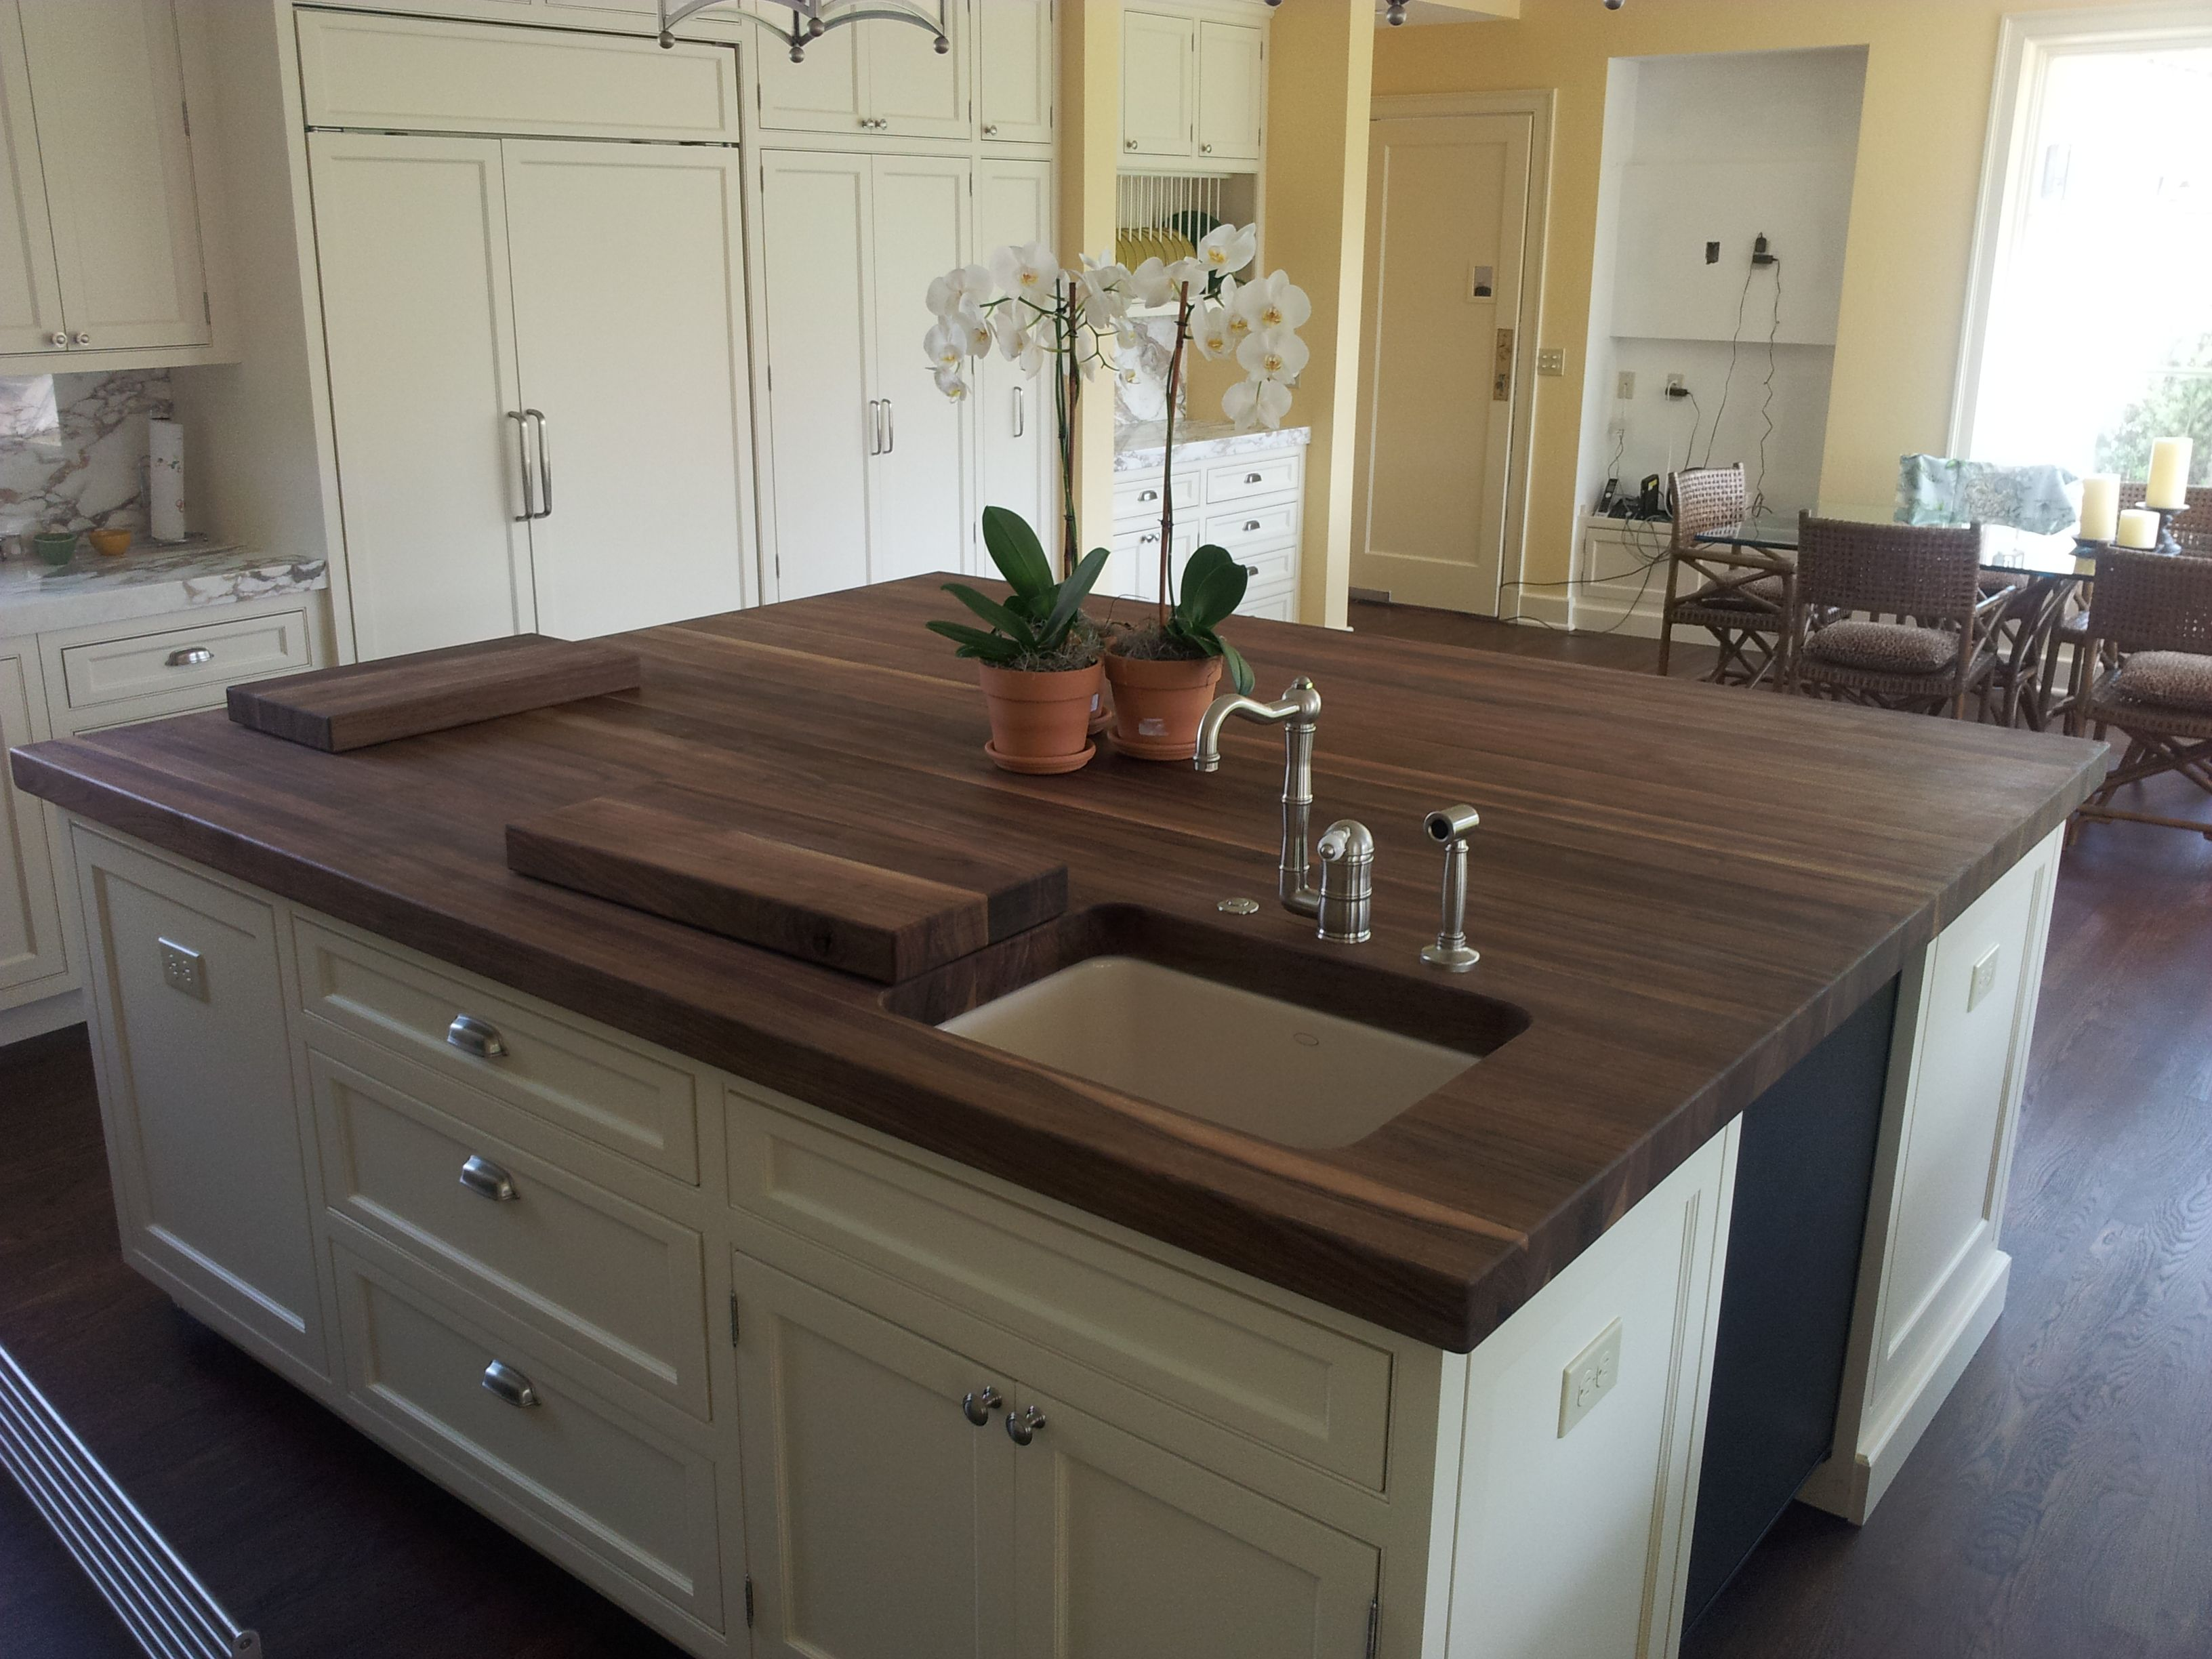 8 Feet Long And 6 Feet Wide 2 1 2 Thick 400 Lbs In Weight Chop Chop Ko Kitchen Island With Seating Kitchen With Long Island Kitchen Island Placement